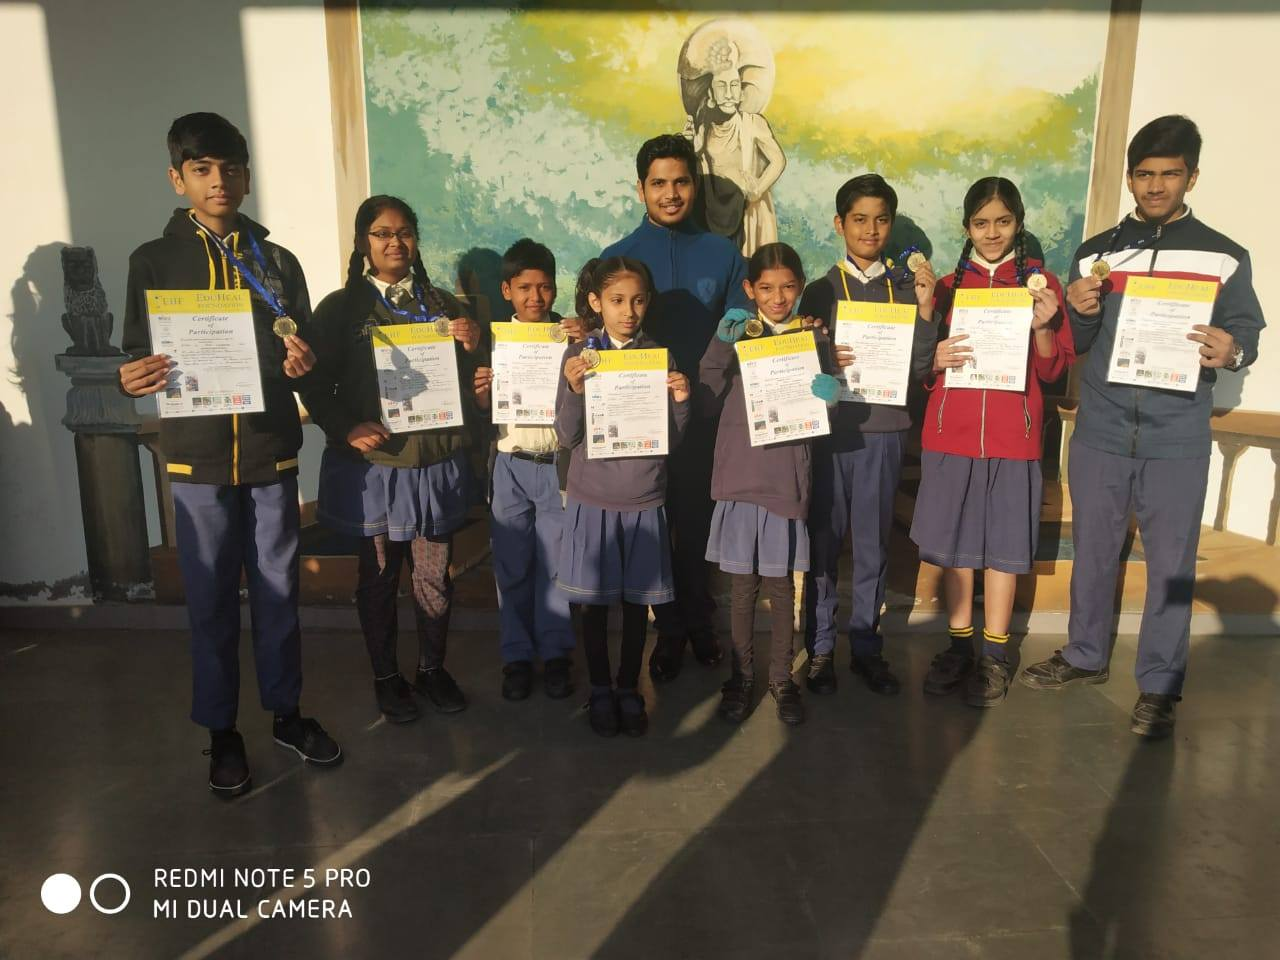 Gold Medal Distribution of Olympiad Art Exam 2018